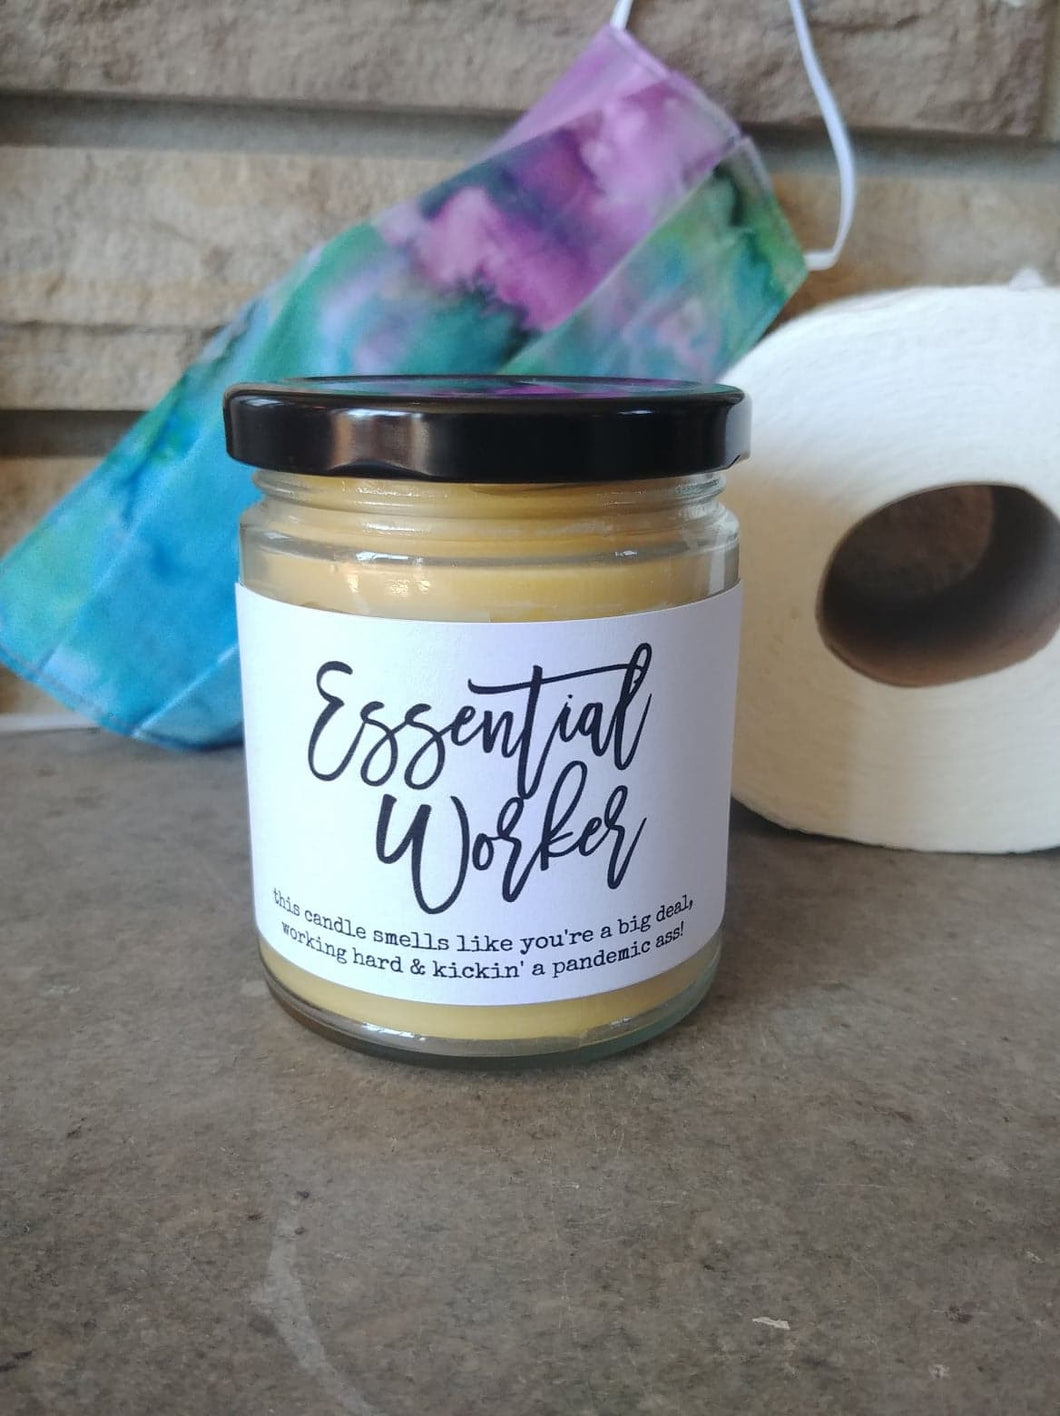 ESSENTIAL WORKER - Handmade Gifts that are funny AF - Small Batched and Locally Made Beeswax Candles - Essential Worker, Coworker, Nurse, Care Gift | Countryside Treasures